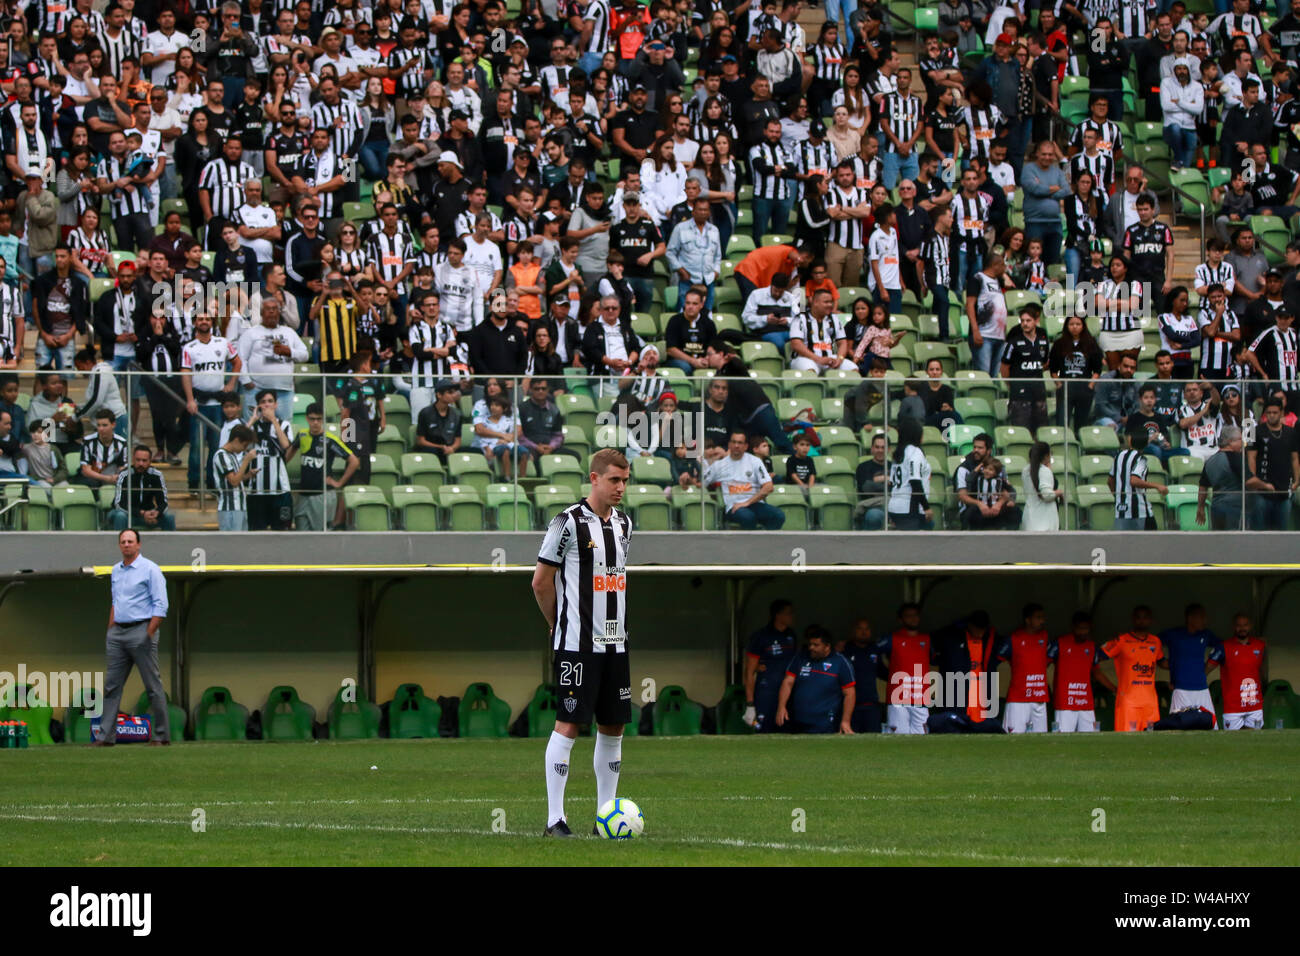 Belo Horizonte, Brazil. 21st July, 2019. MG vs Fortaleza, a match valid for the 2019 Brazilian Championship, held at Arena Independência, Belo Horizonte, MG. Credit: Dudu Macedo/FotoArena/Alamy Live News - Stock Image